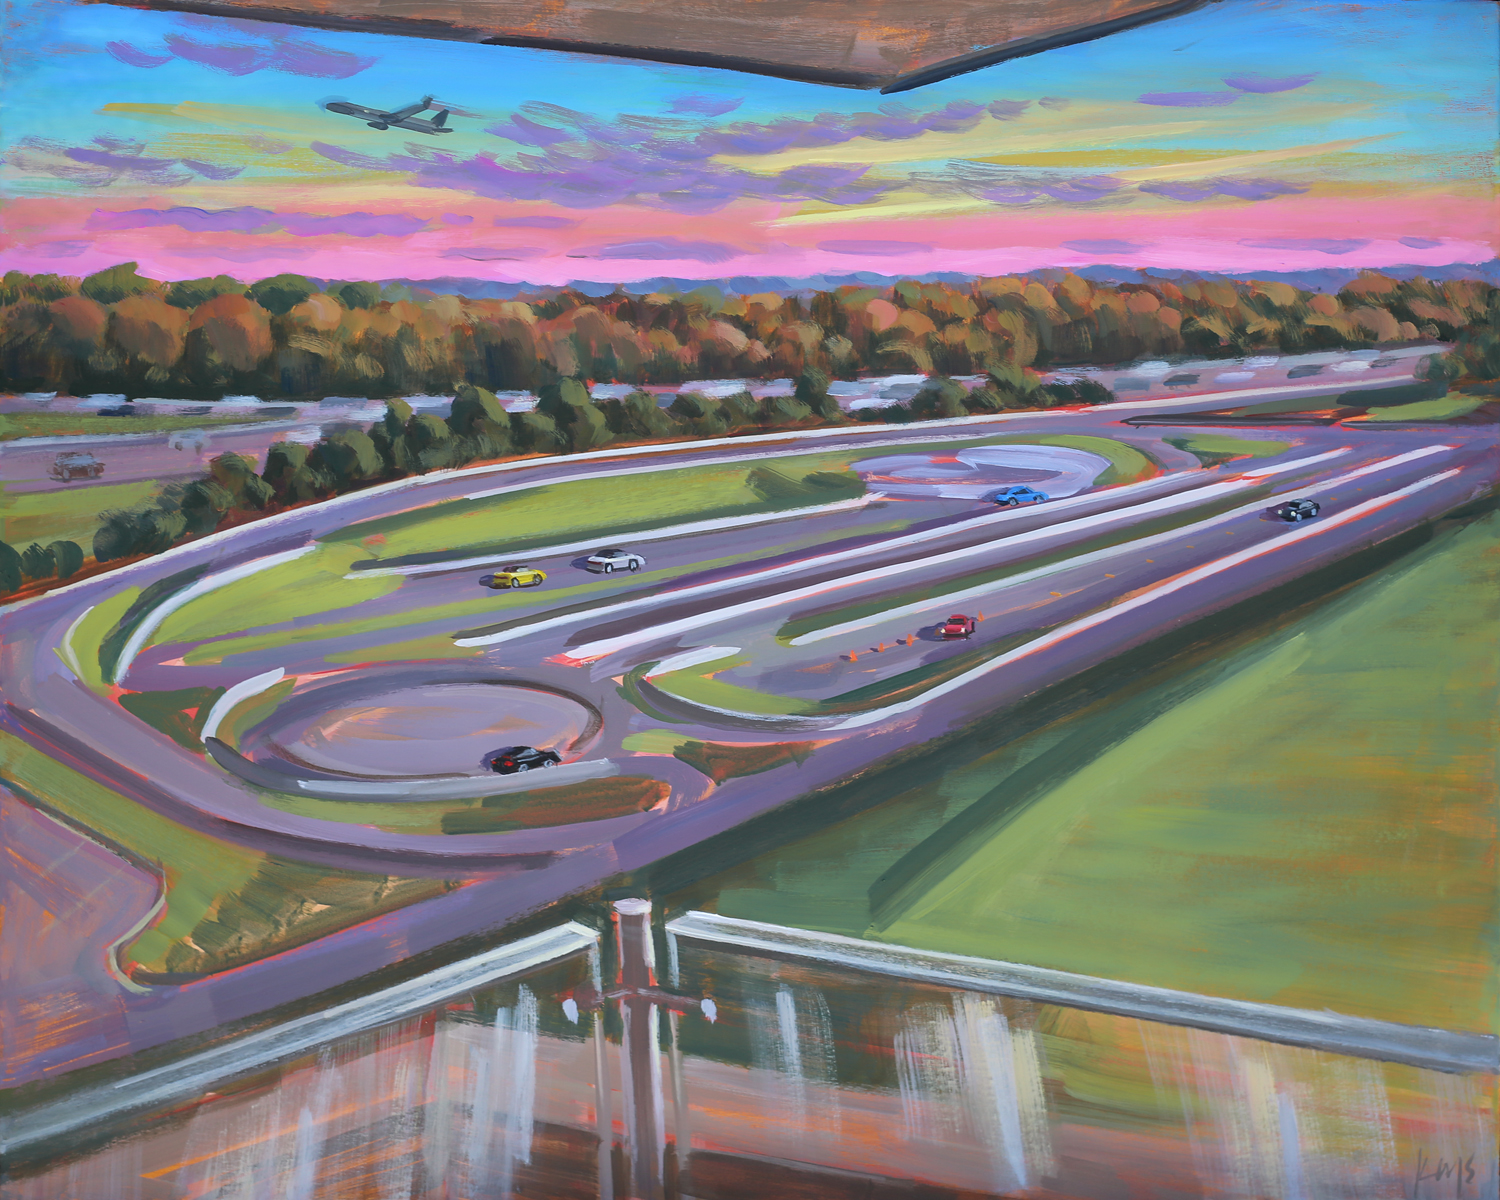 Live Event Painter, Ben Keys, captured the balcony view of Overdrive Lounge overlooking the Porsche Experience Center during the Grand Opening event of Atlanta's newest Hotel, Solis Two Porsche Drive.